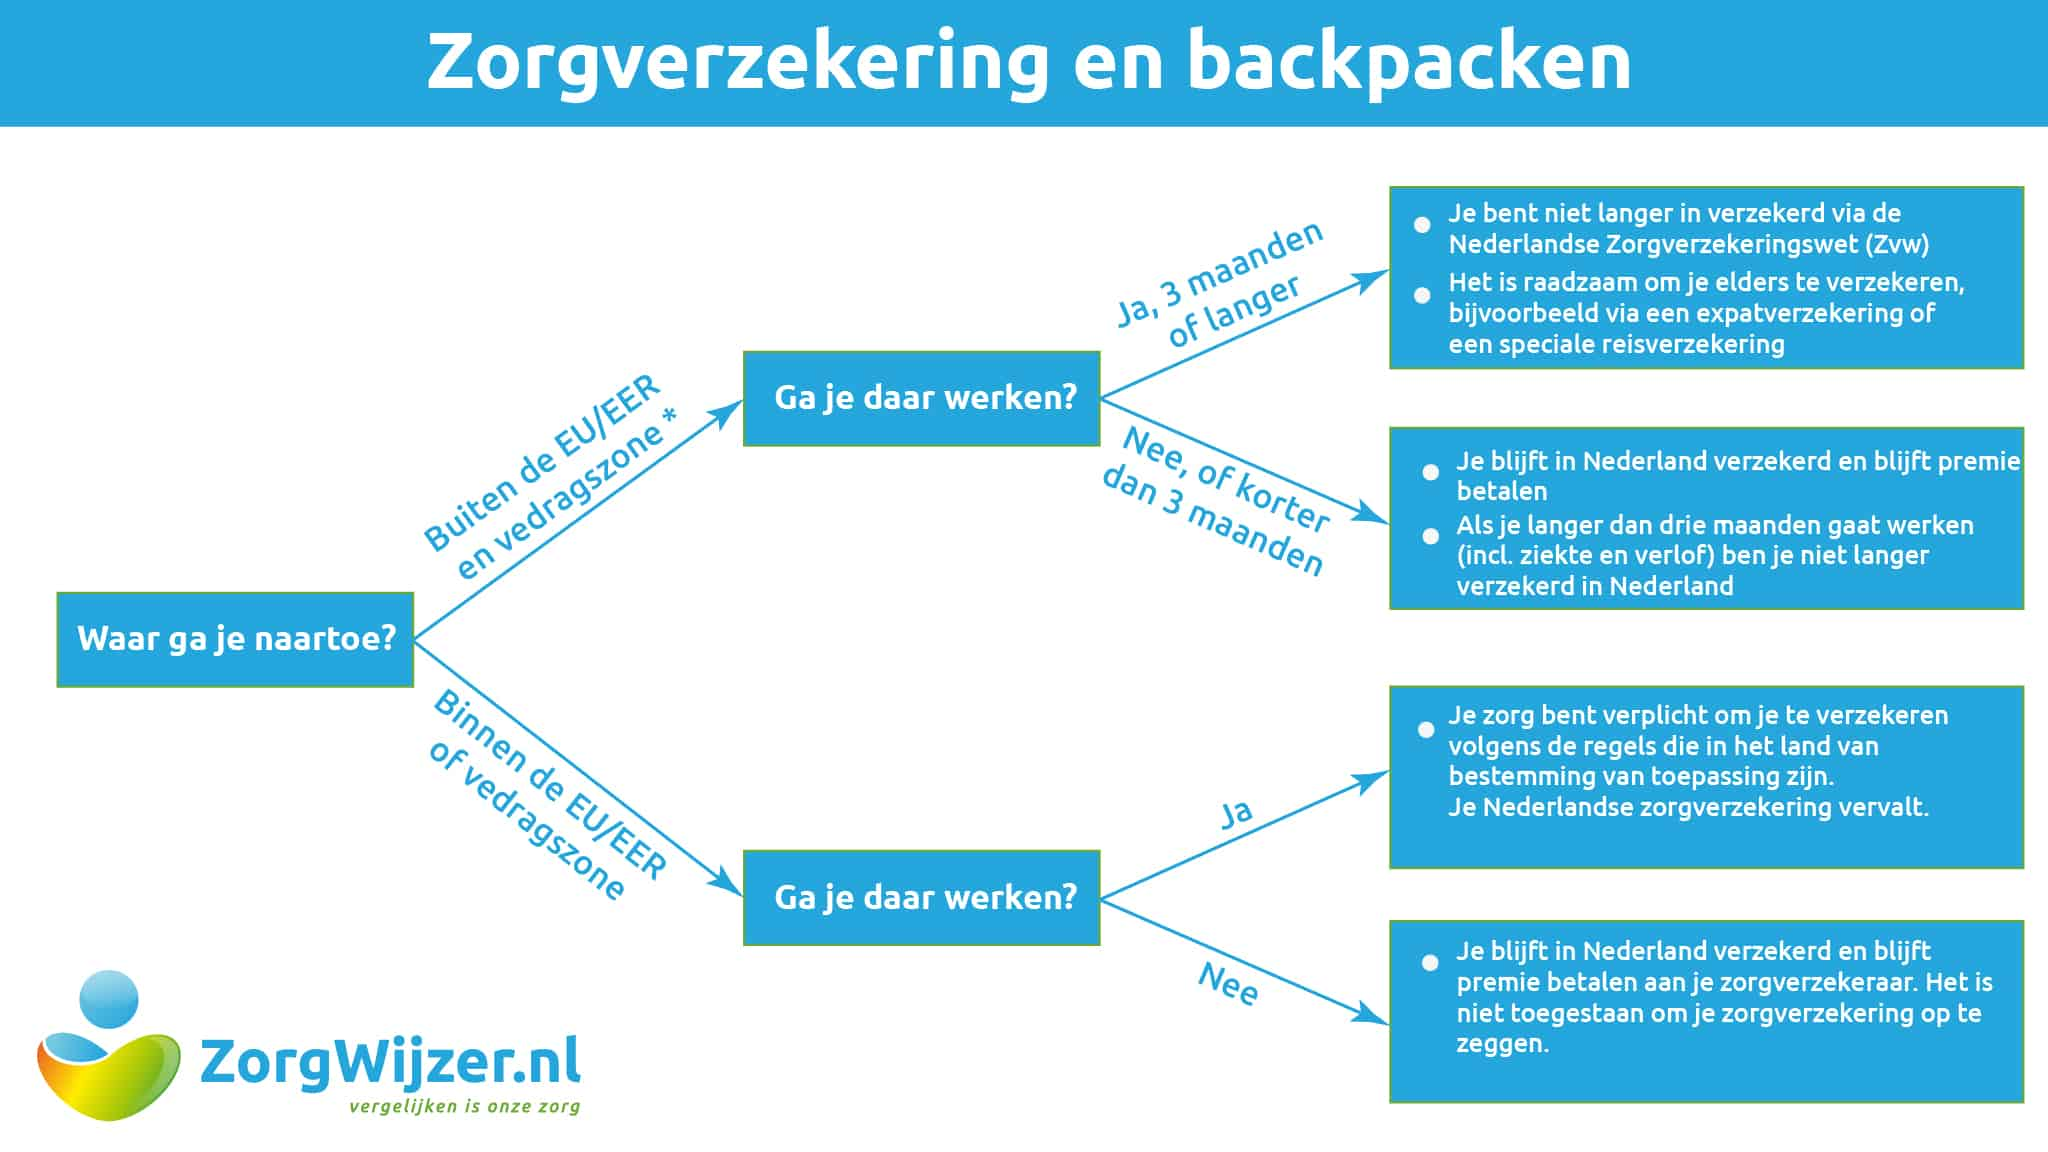 Zorgverzekering en backpacken